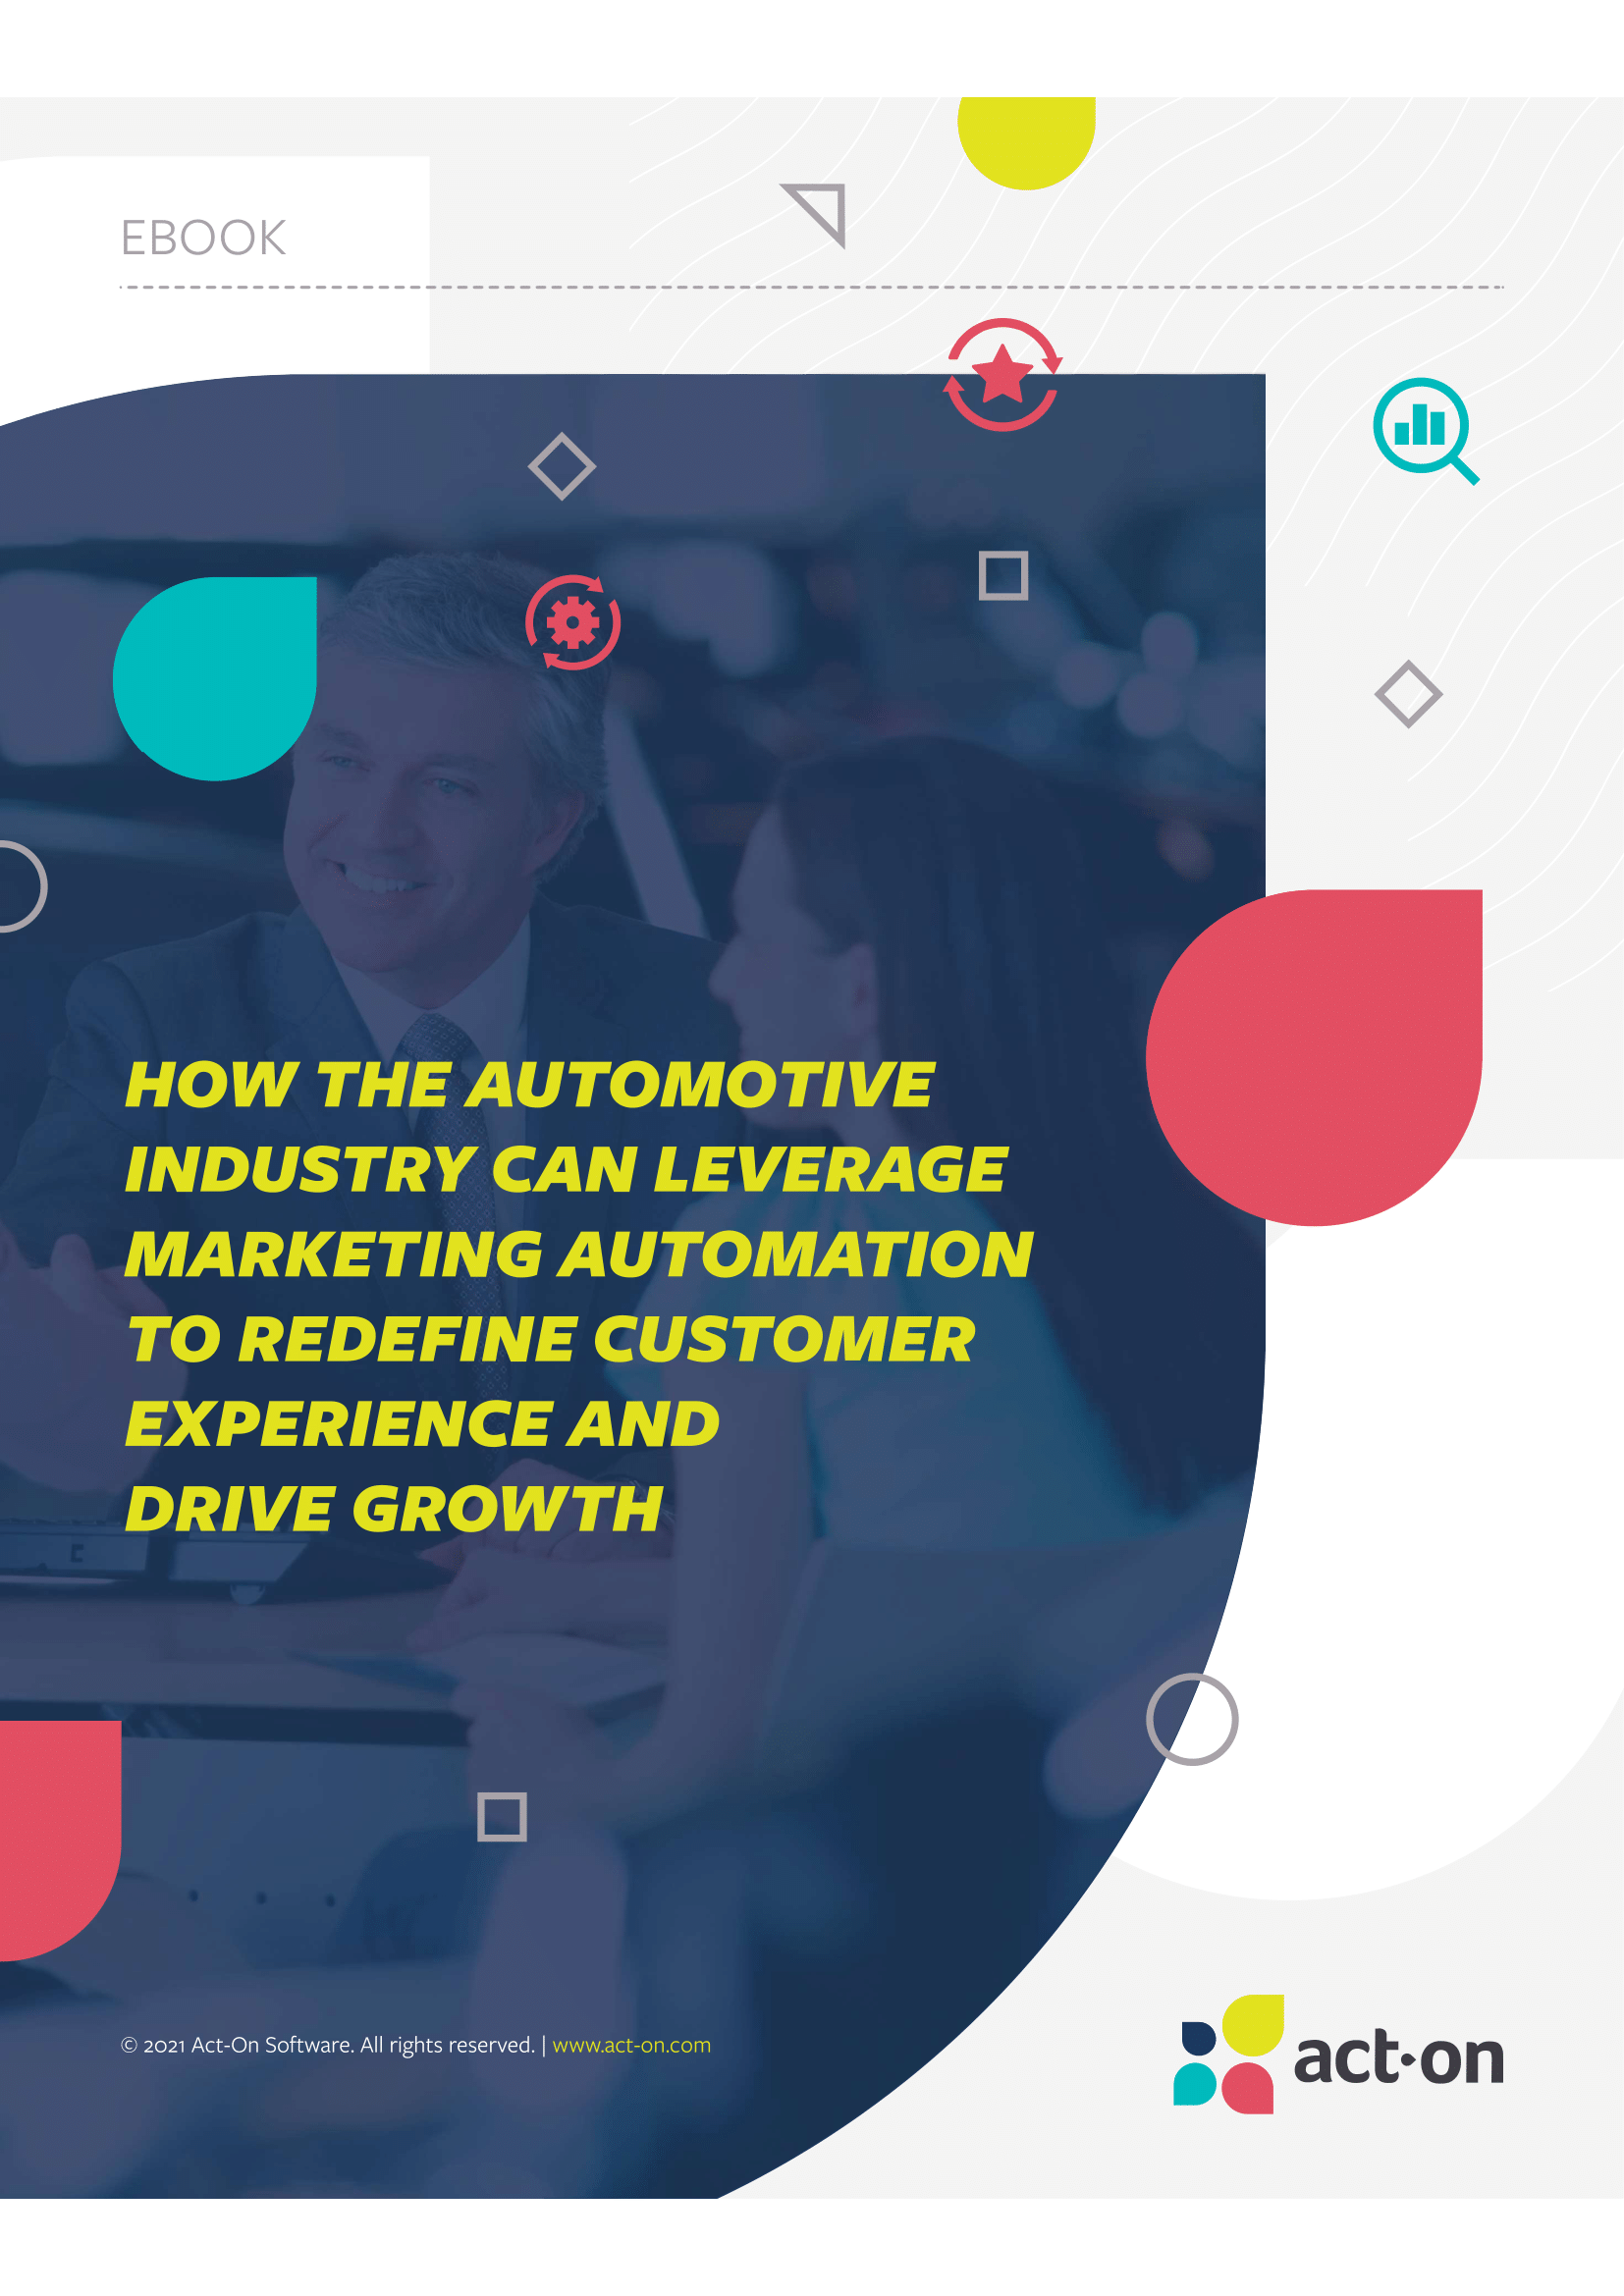 How the Automotive Industry Can Leverage Marketing Automation to Redefine Customer Experience and Drive Growth